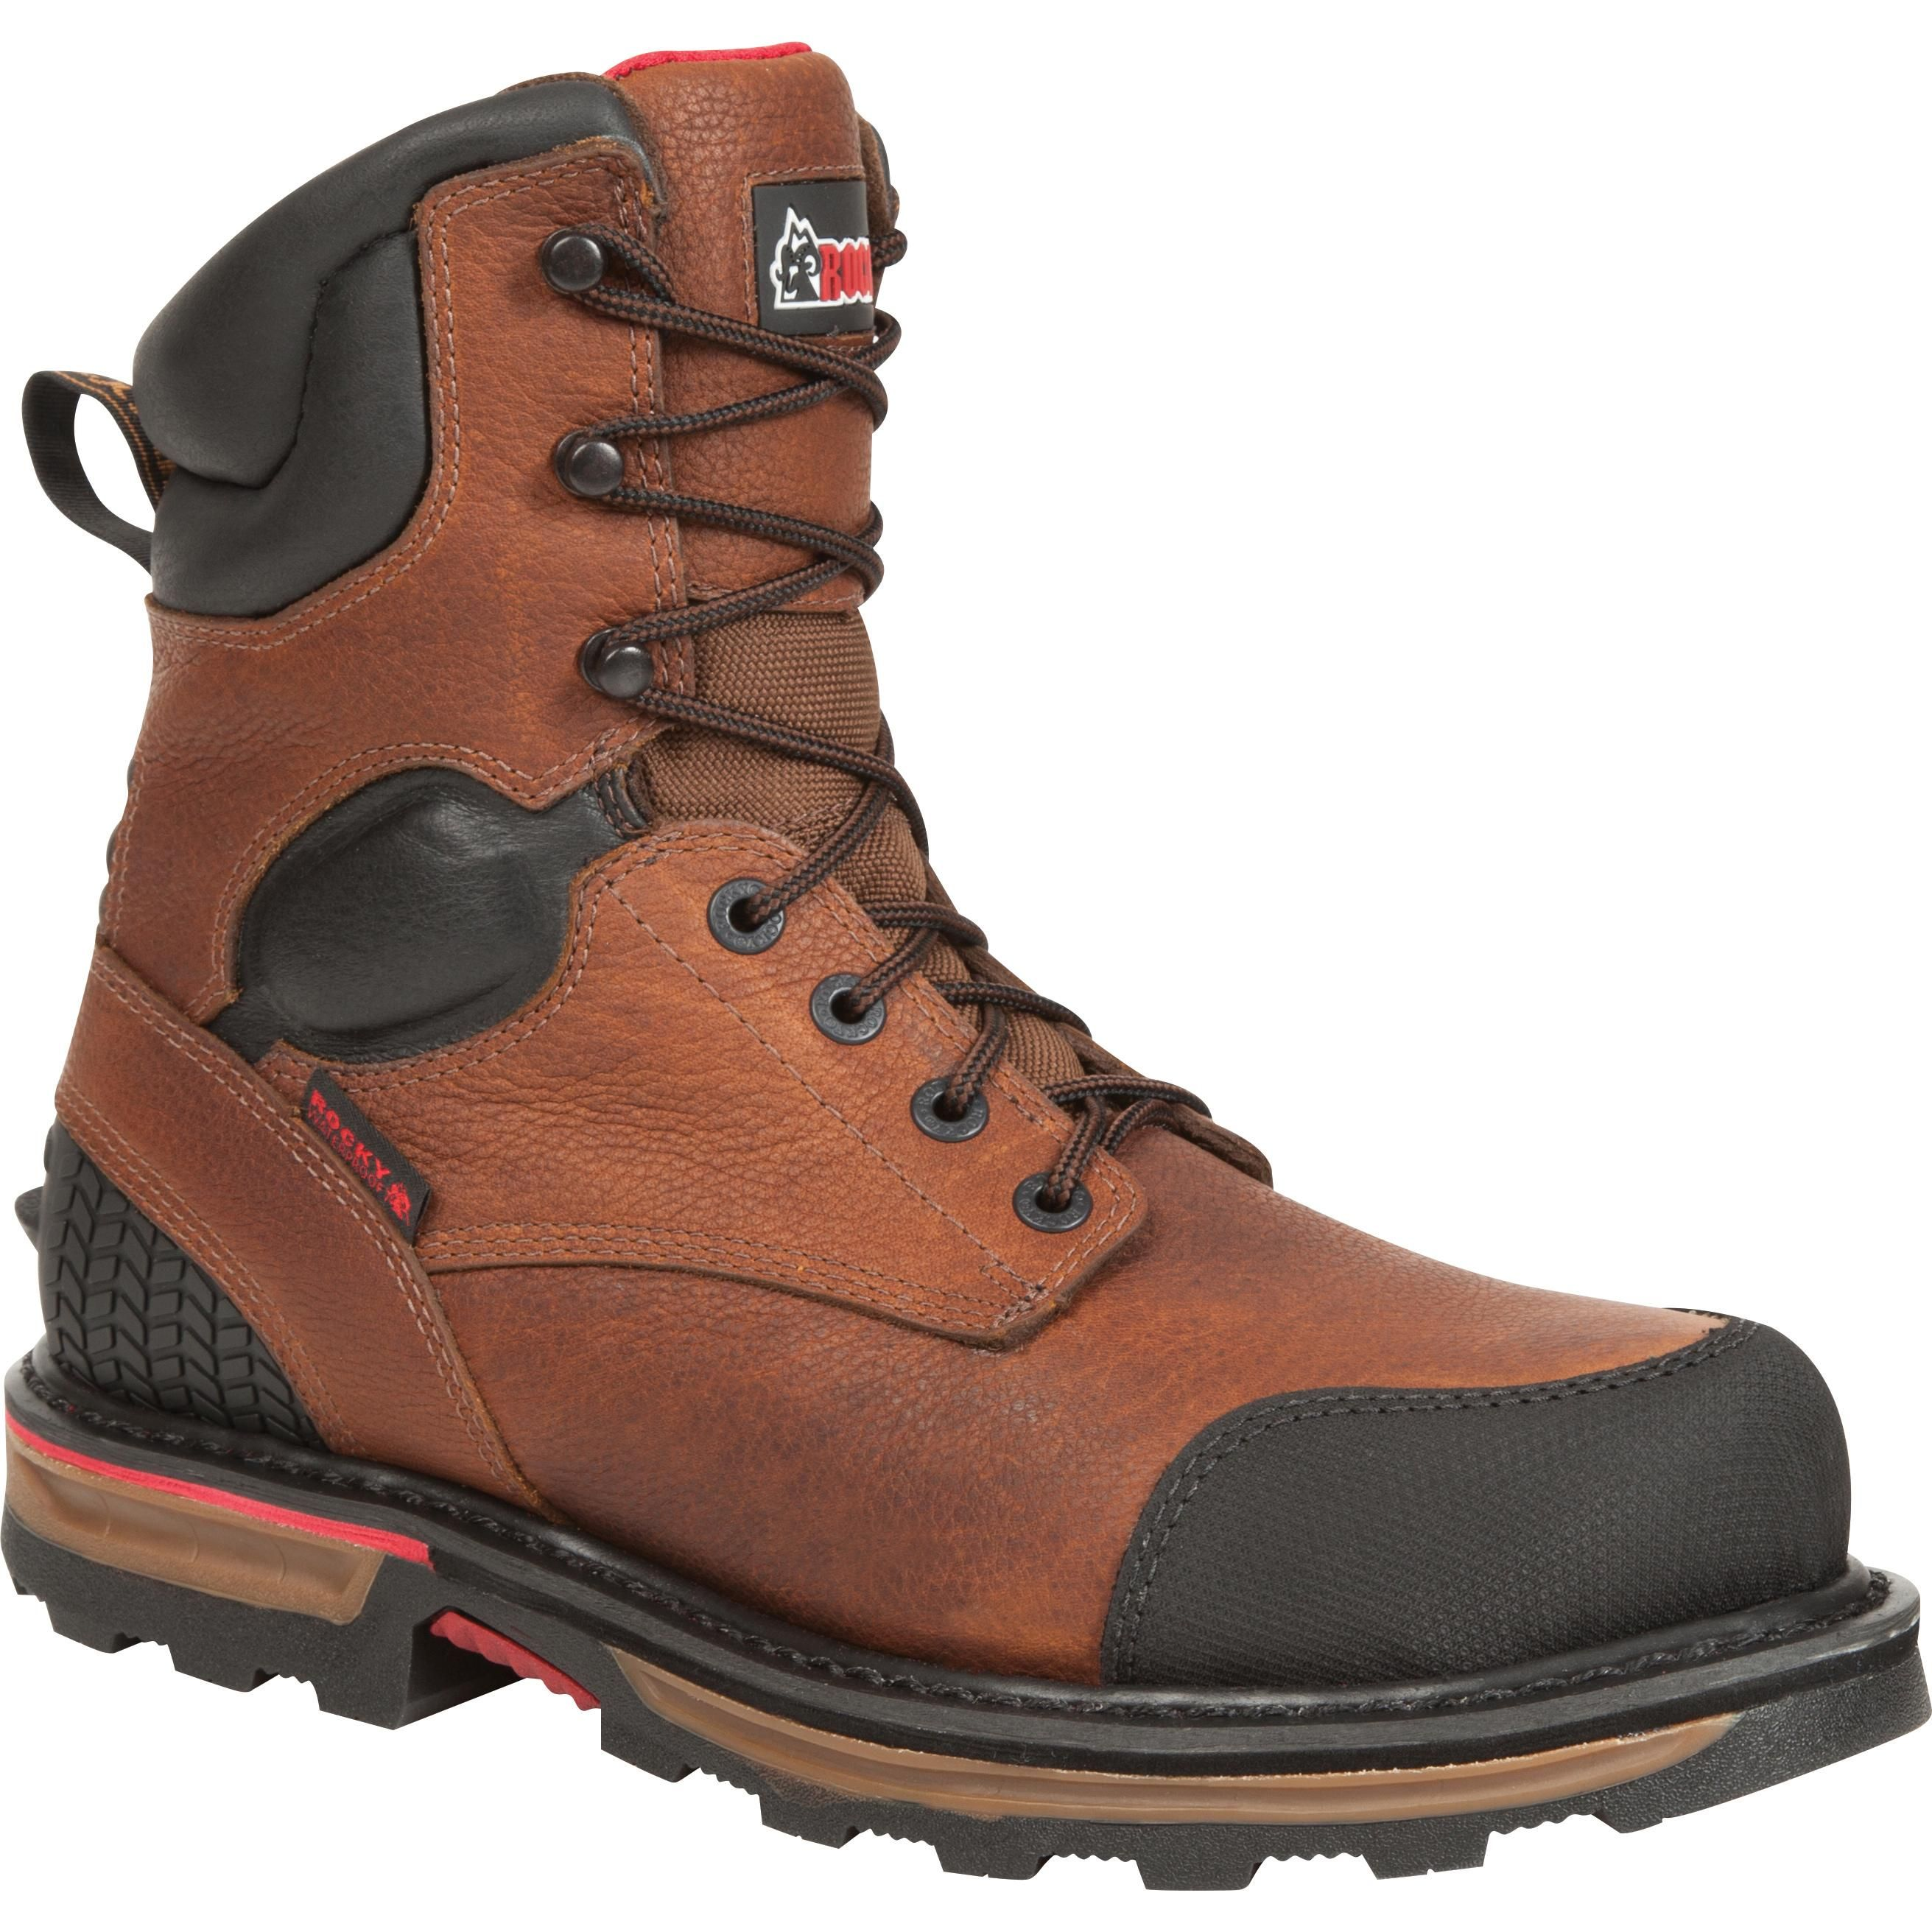 Rocky Elements Dirt Steel Toe Waterproof Work Boot, #RKYK076